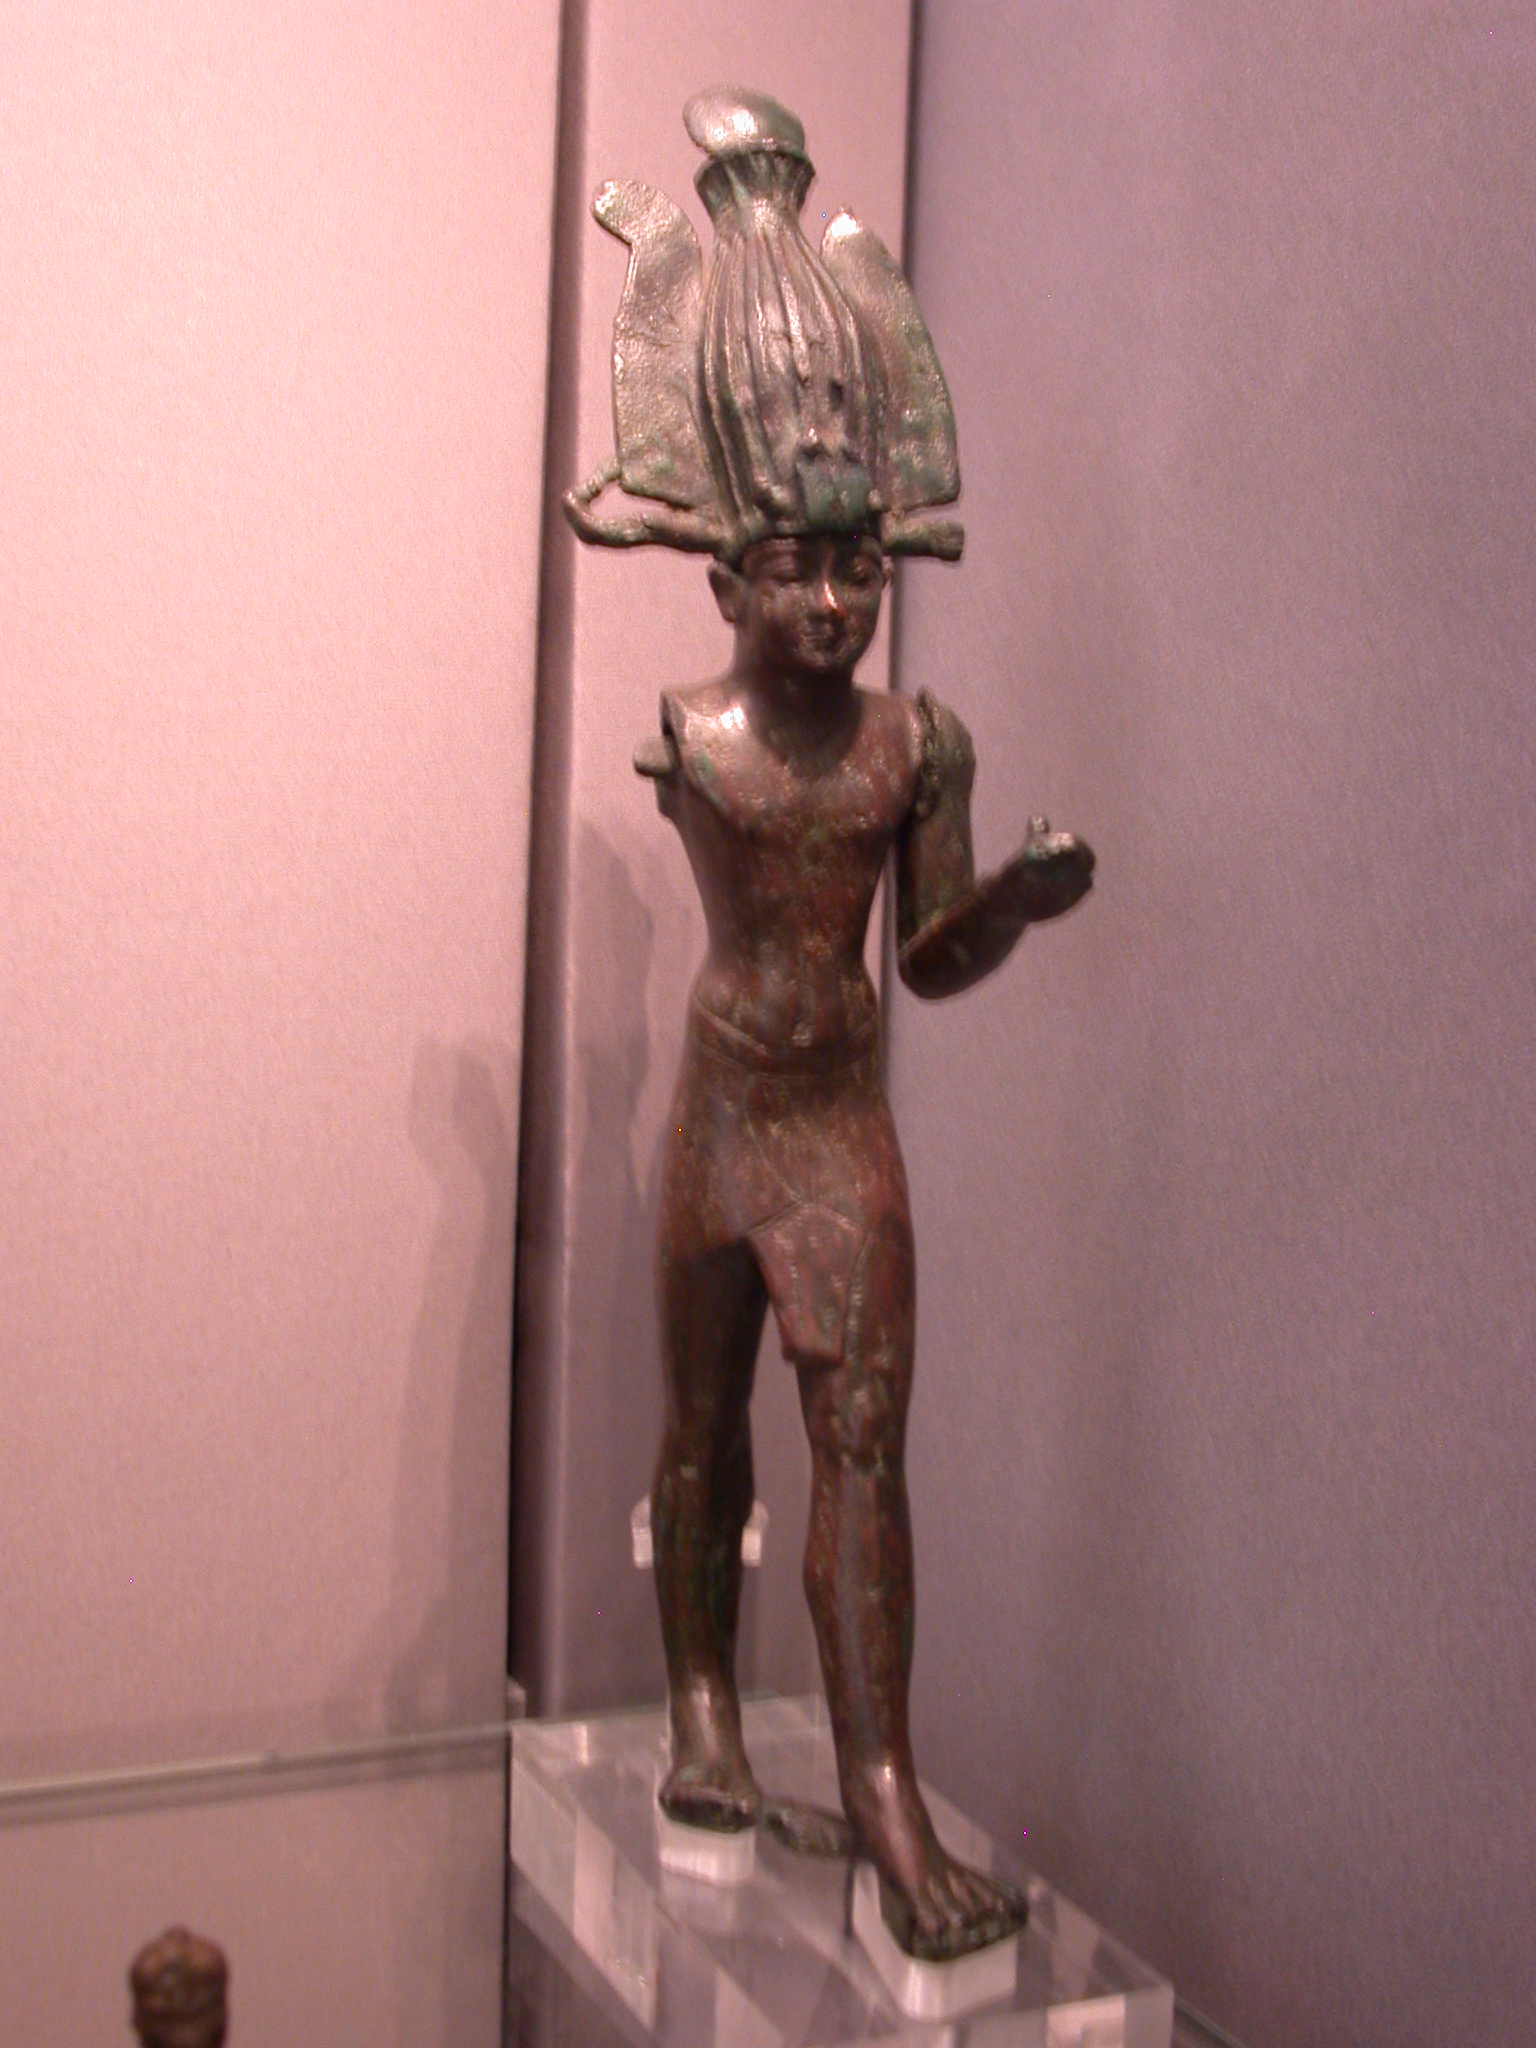 Figurine of Taharqa, Copper Alloy, 25th Dynasty, 690-664 BCE, Egypt, in Fitzwilliam Museum, Cambridge, England